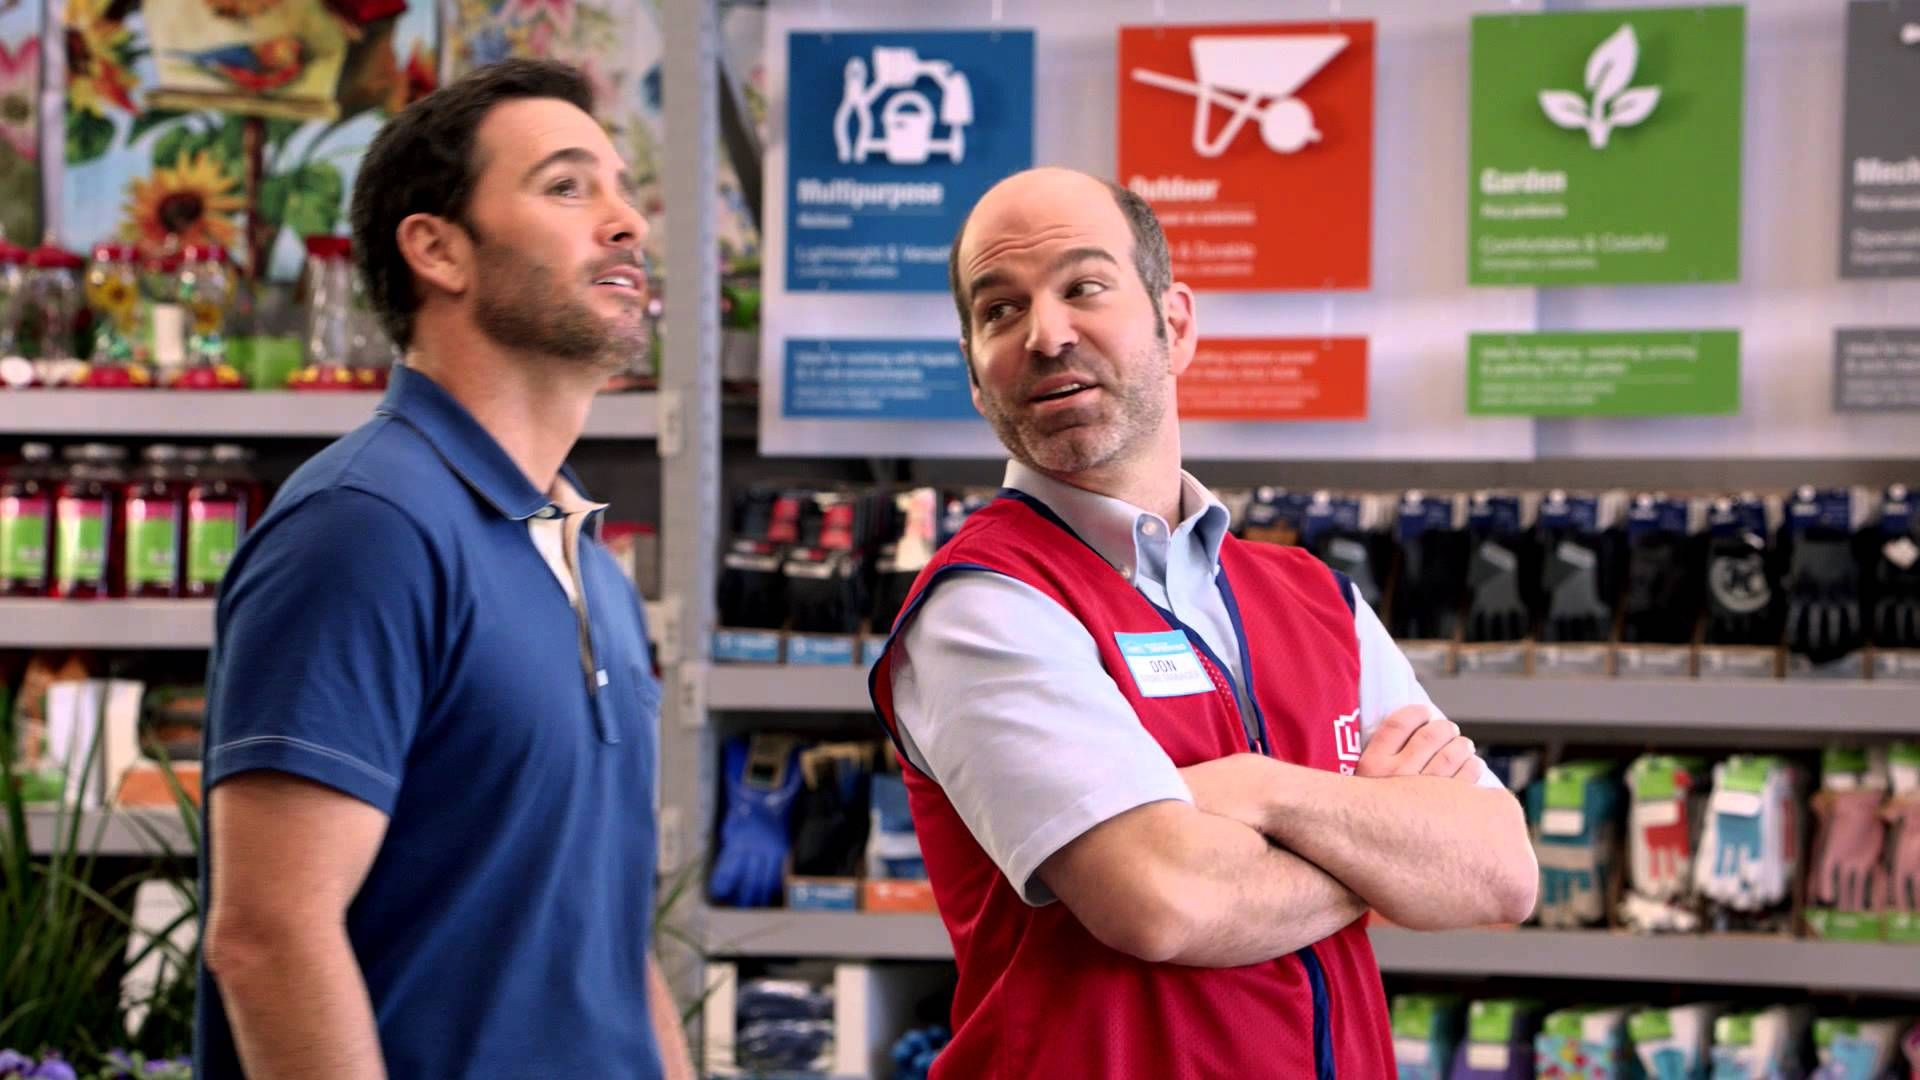 Showing Jimmie Johnson Pride at Lowe's - 2014 Commercial Boom Confetti